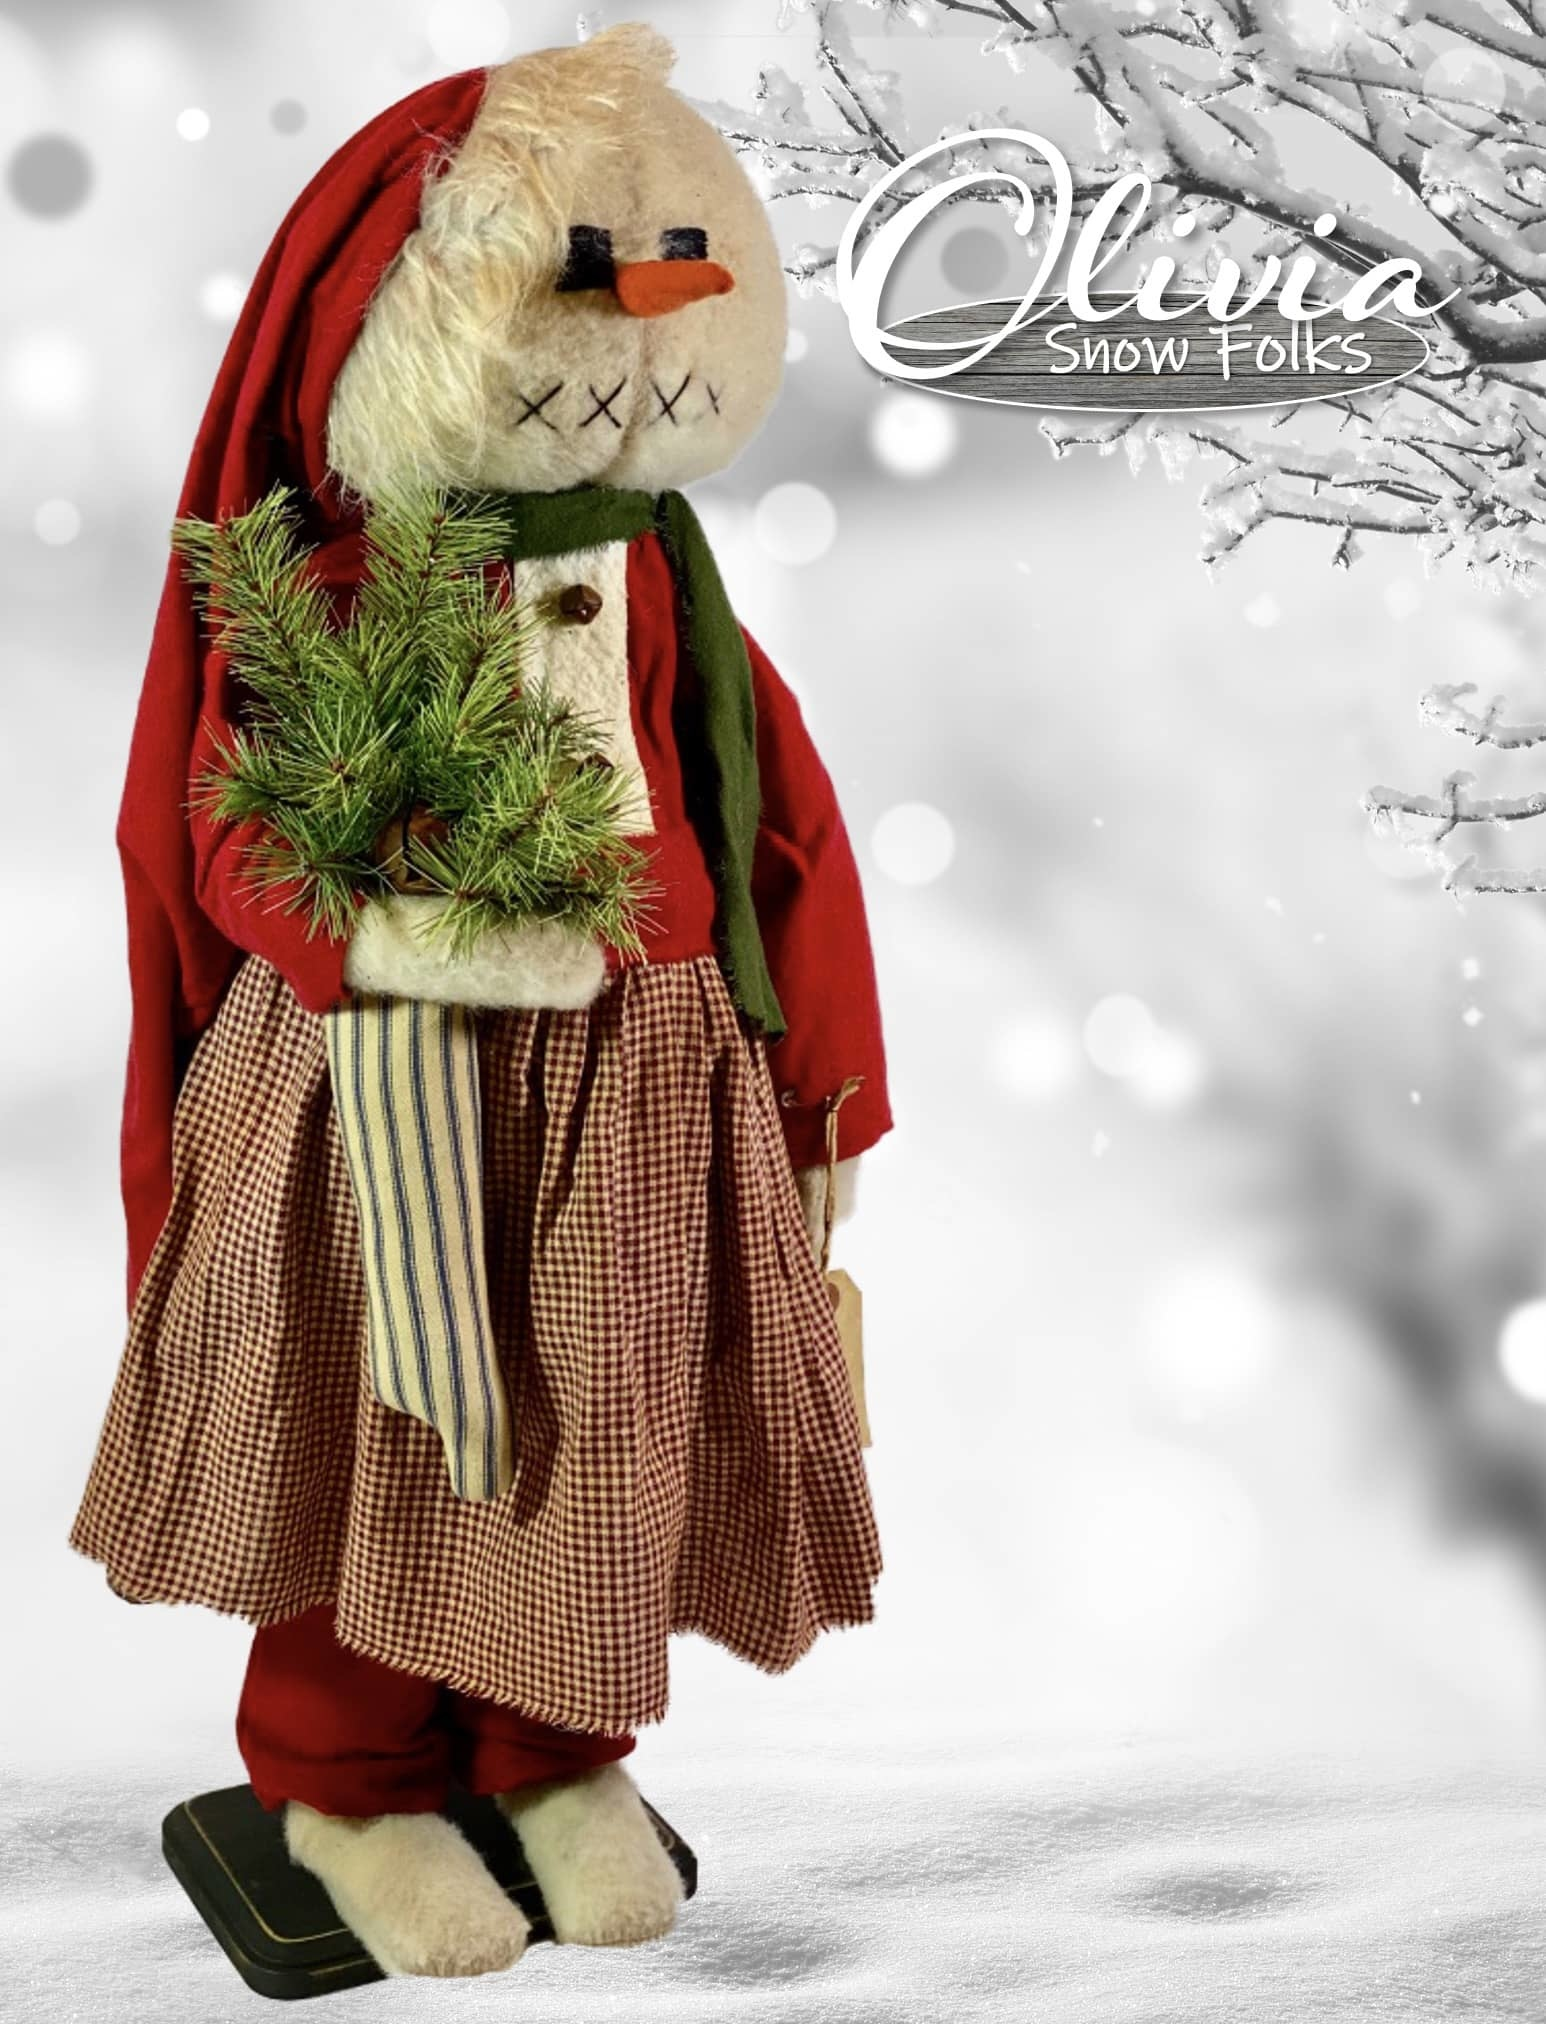 Nana's Farmhouse Olivia The Snow Girl Red Dress Holding Ticking Stocking W/Greens